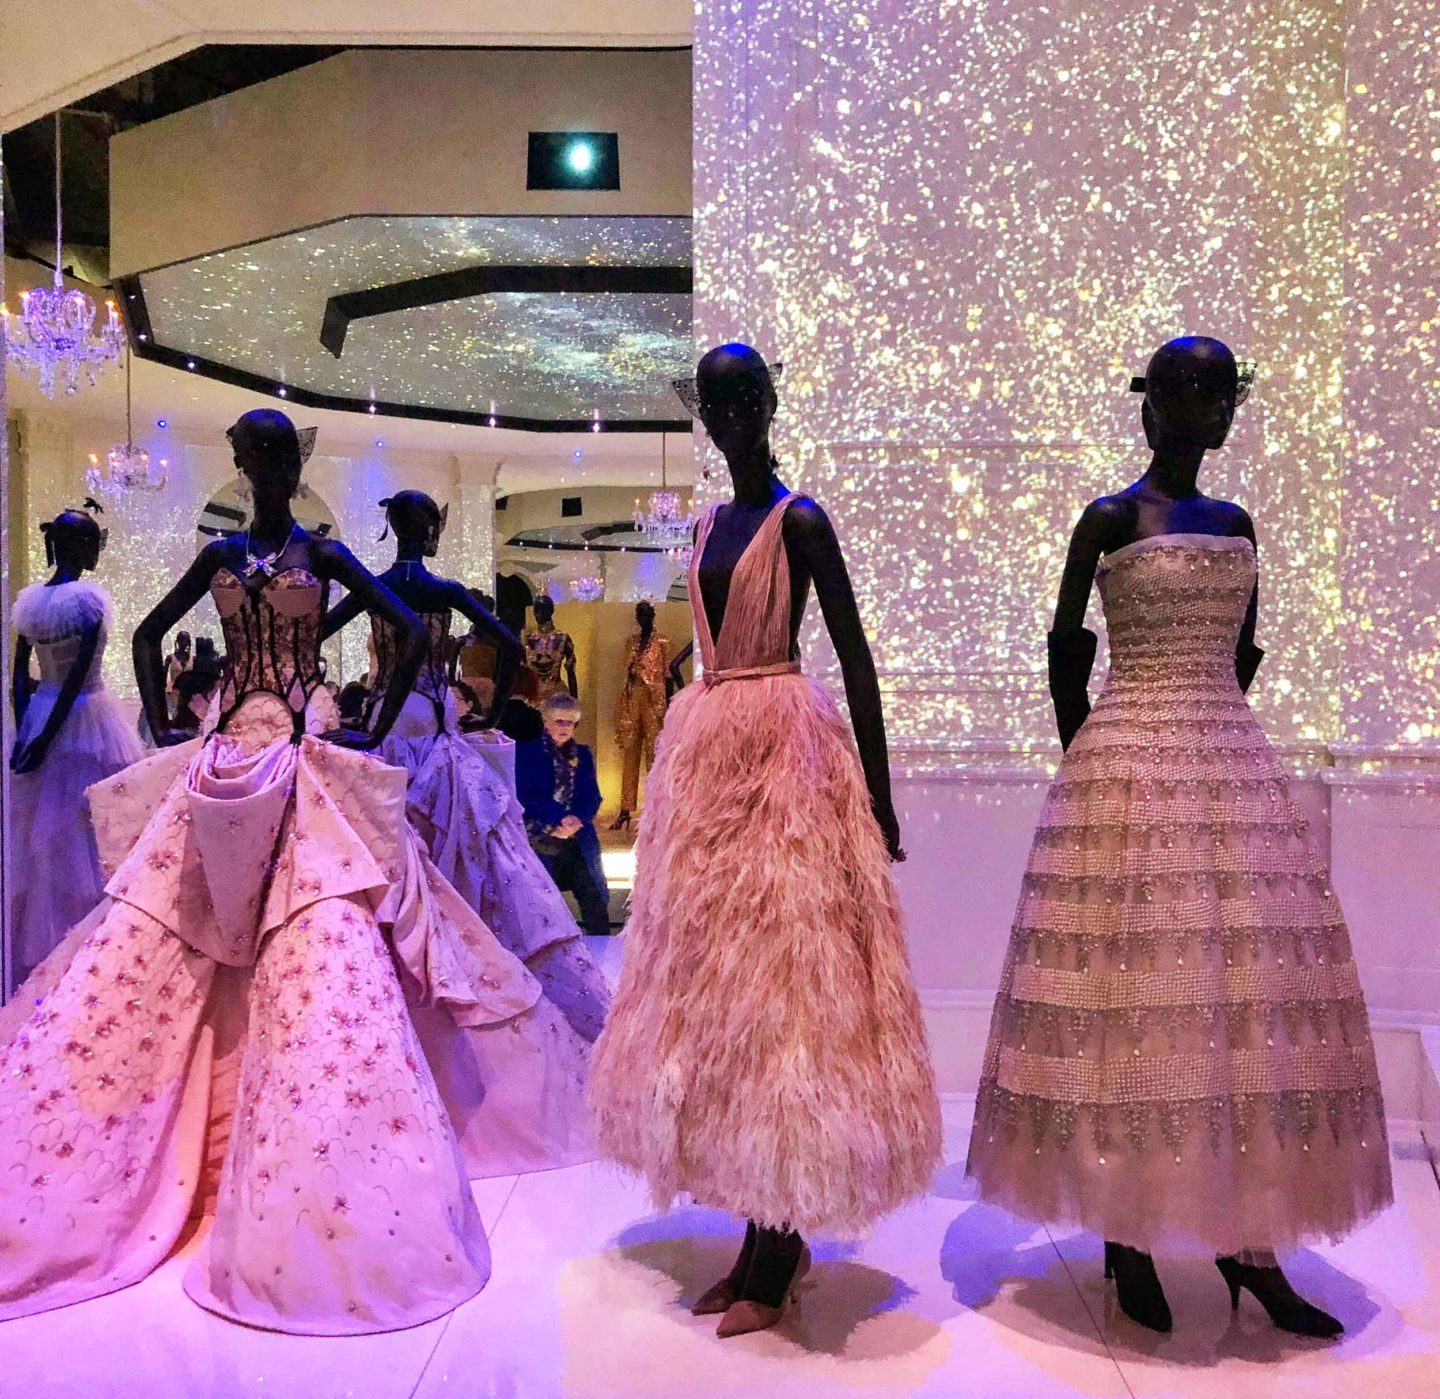 The Christian Dior exhibition London